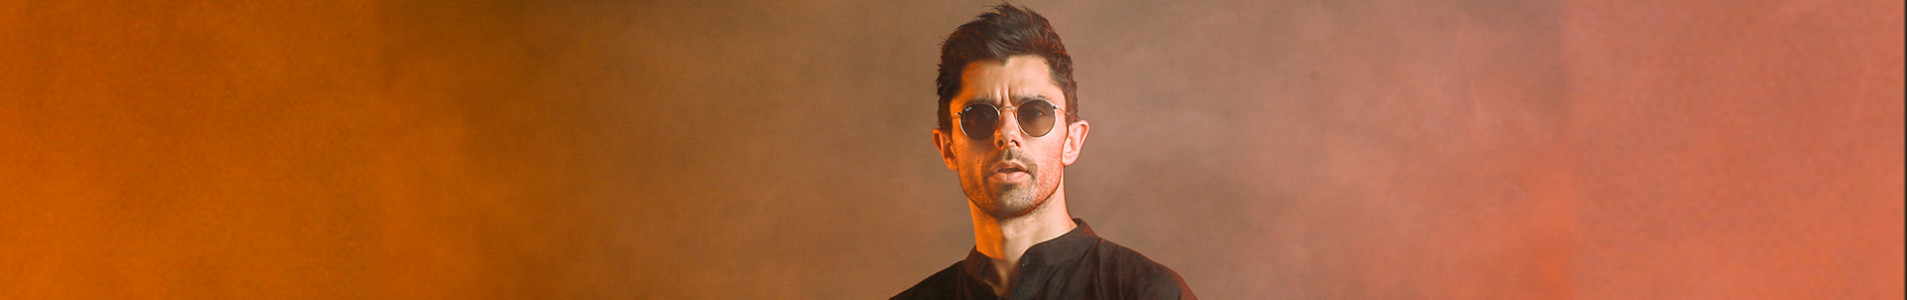 VOTE NOW: What is your favorite track by KSHMR?